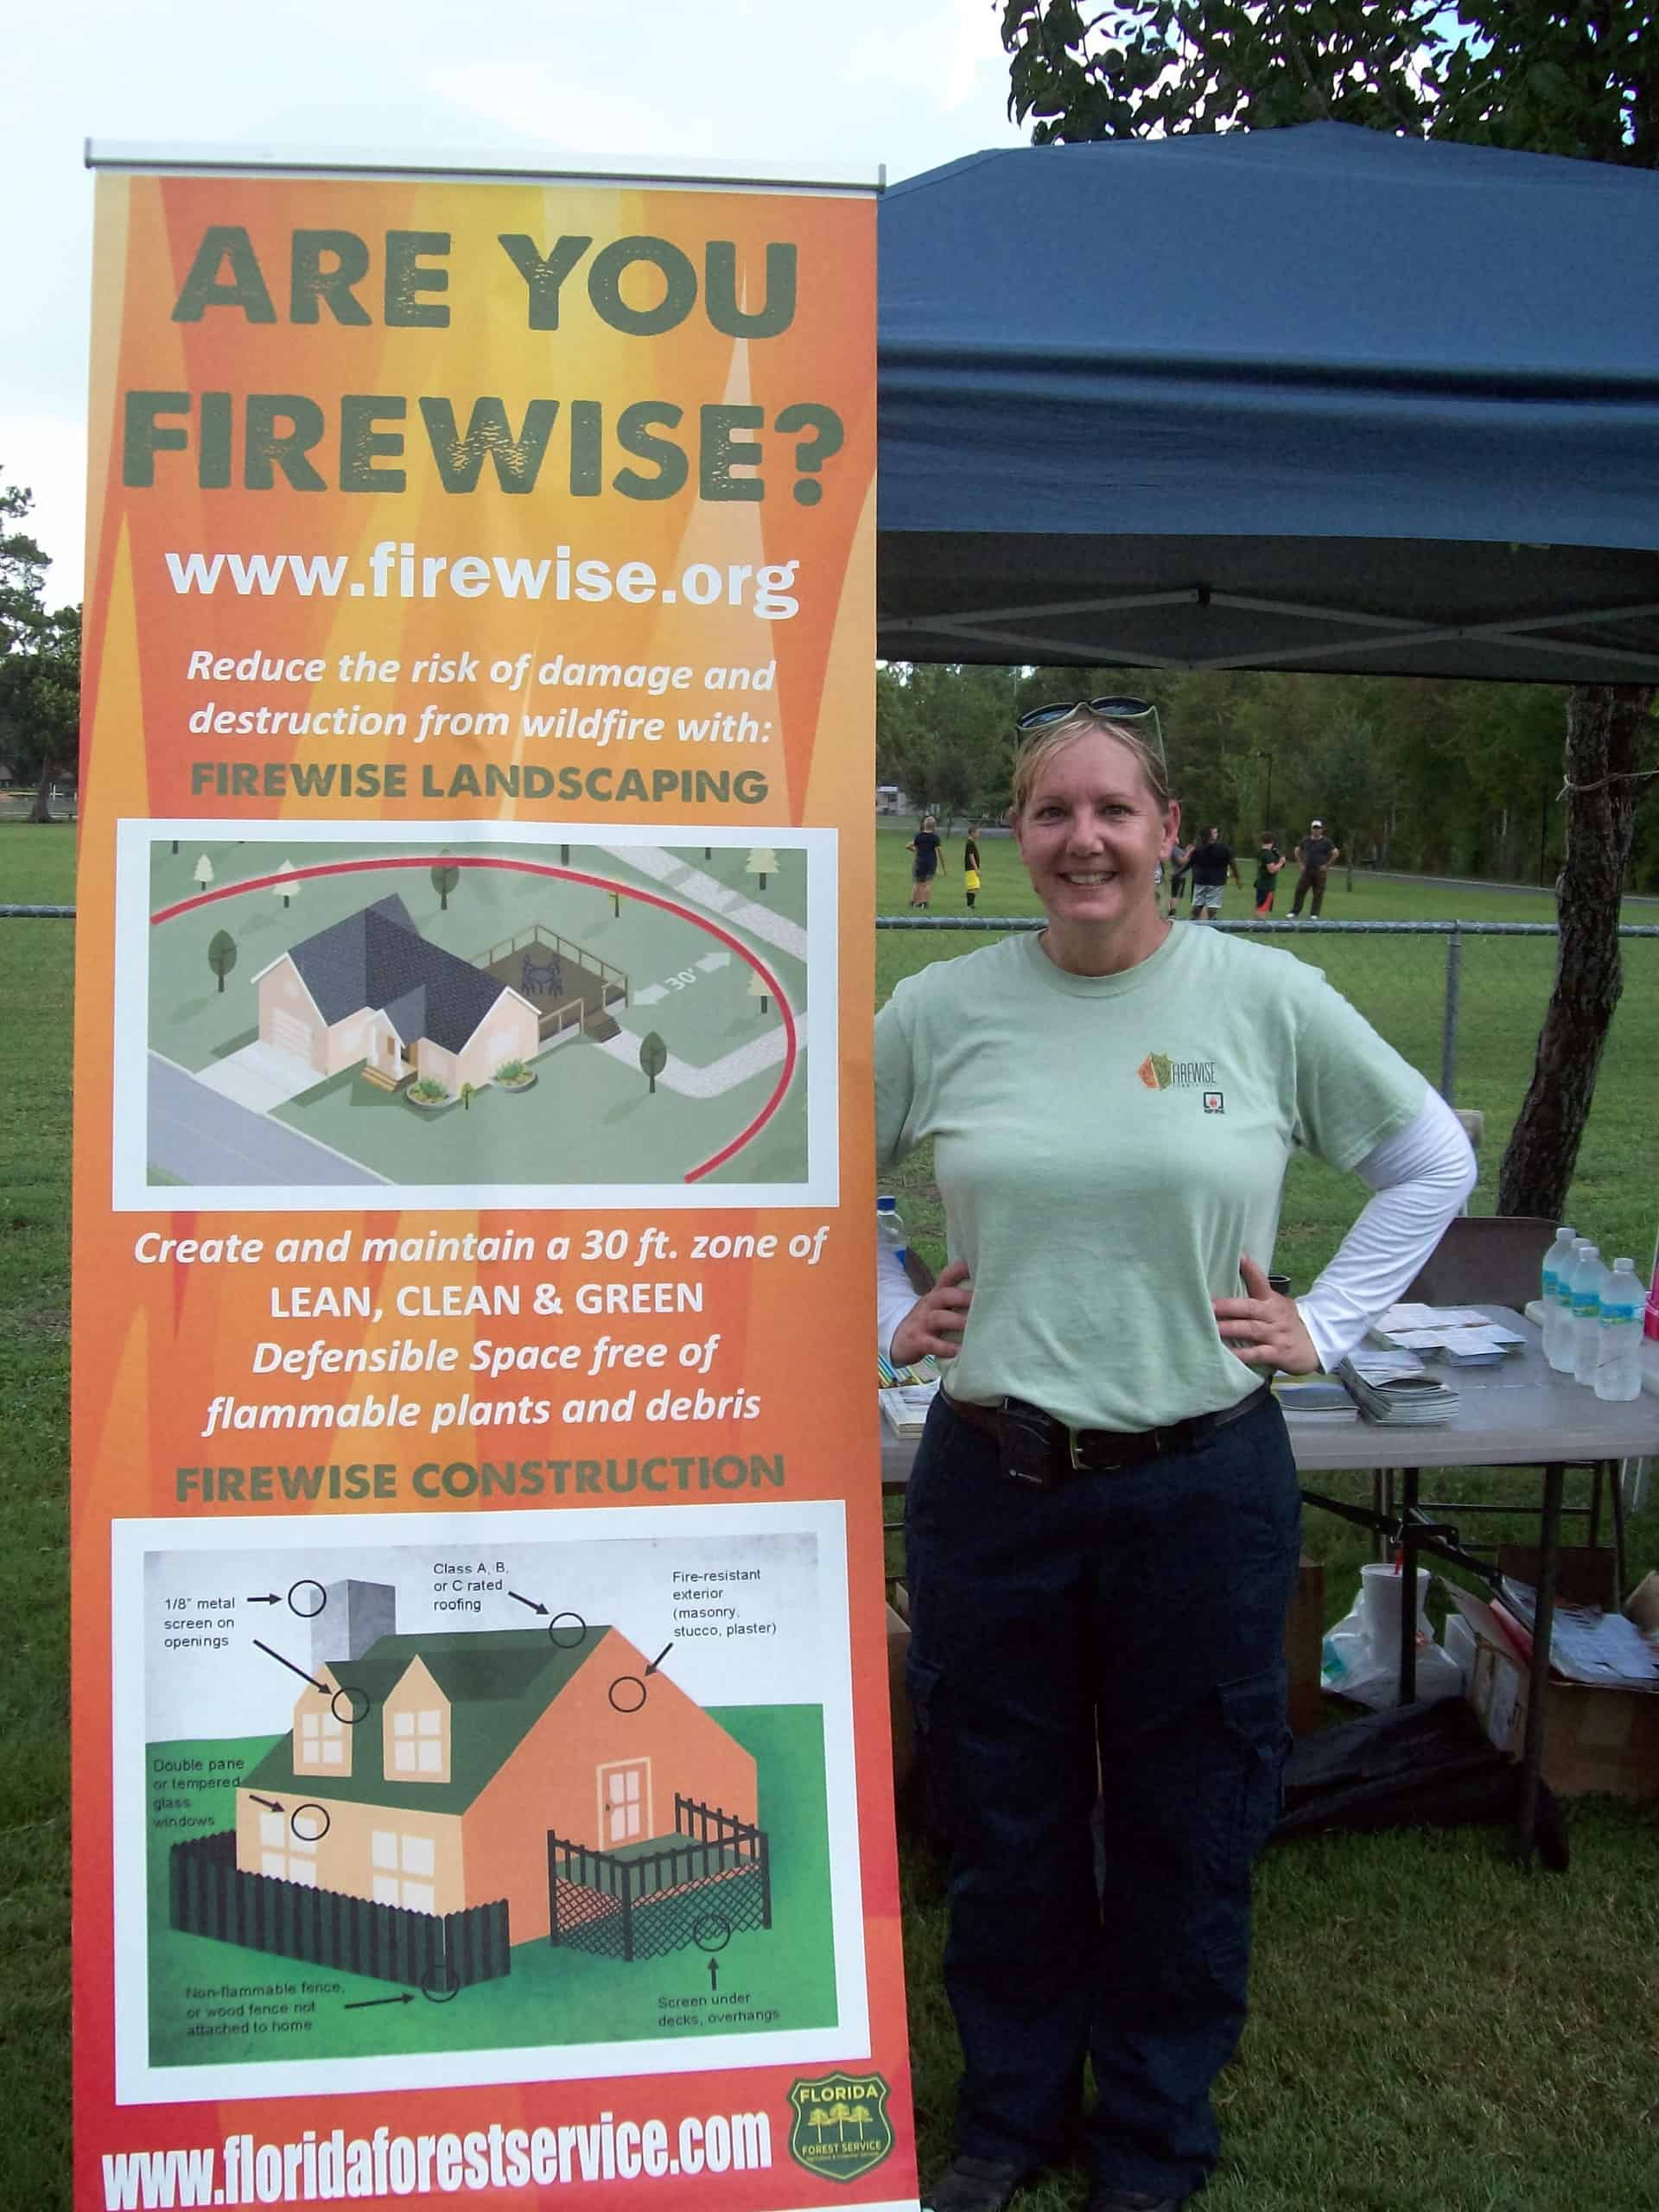 Anderson standing next to a Firewise banner